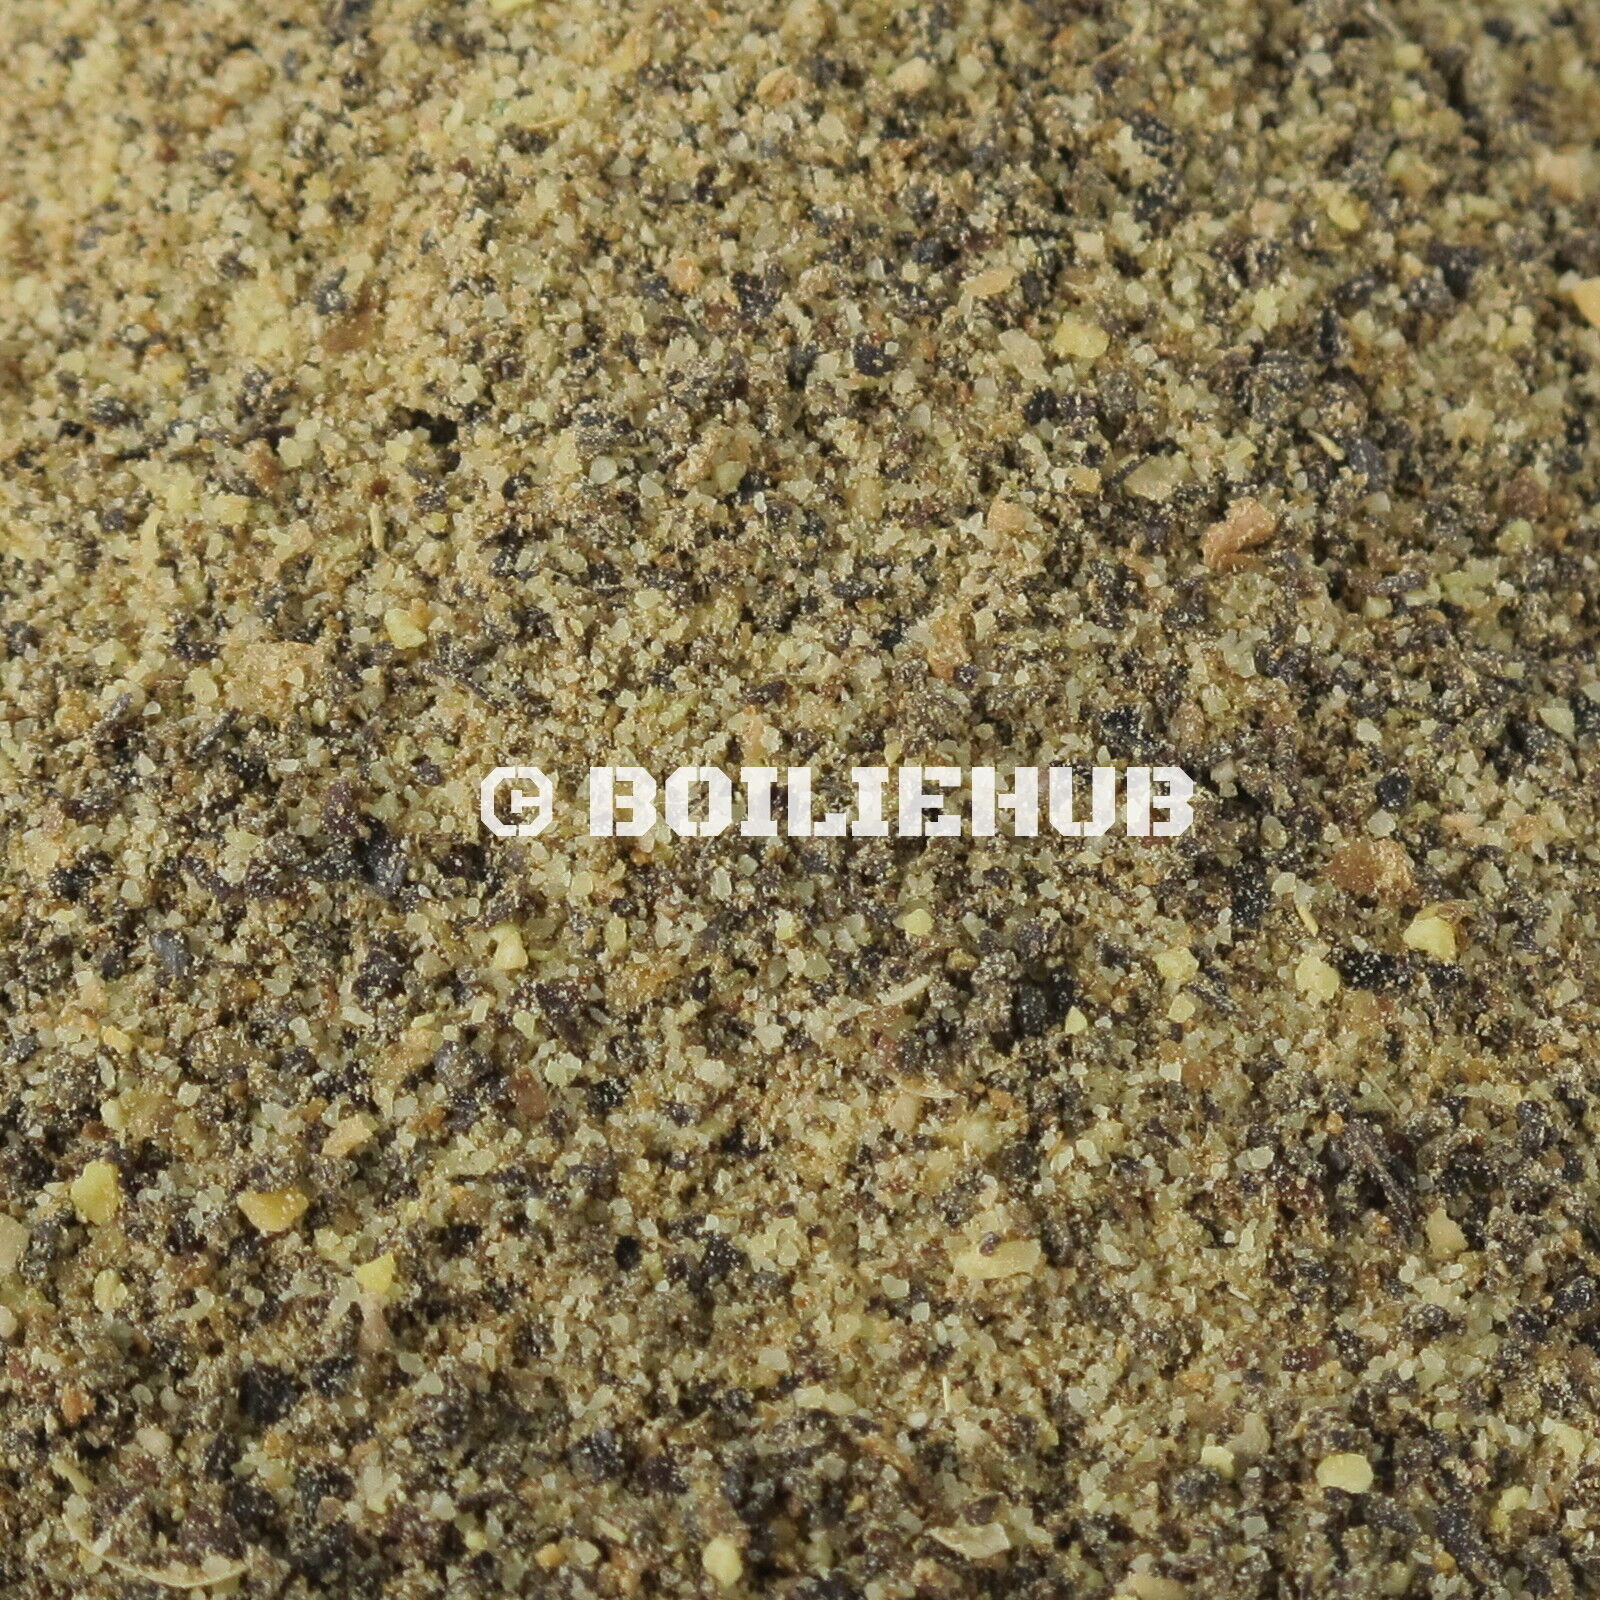 BOILIE BASE MIX BY BOILIEHUB - AROMATIC HEMP sent by next day courier